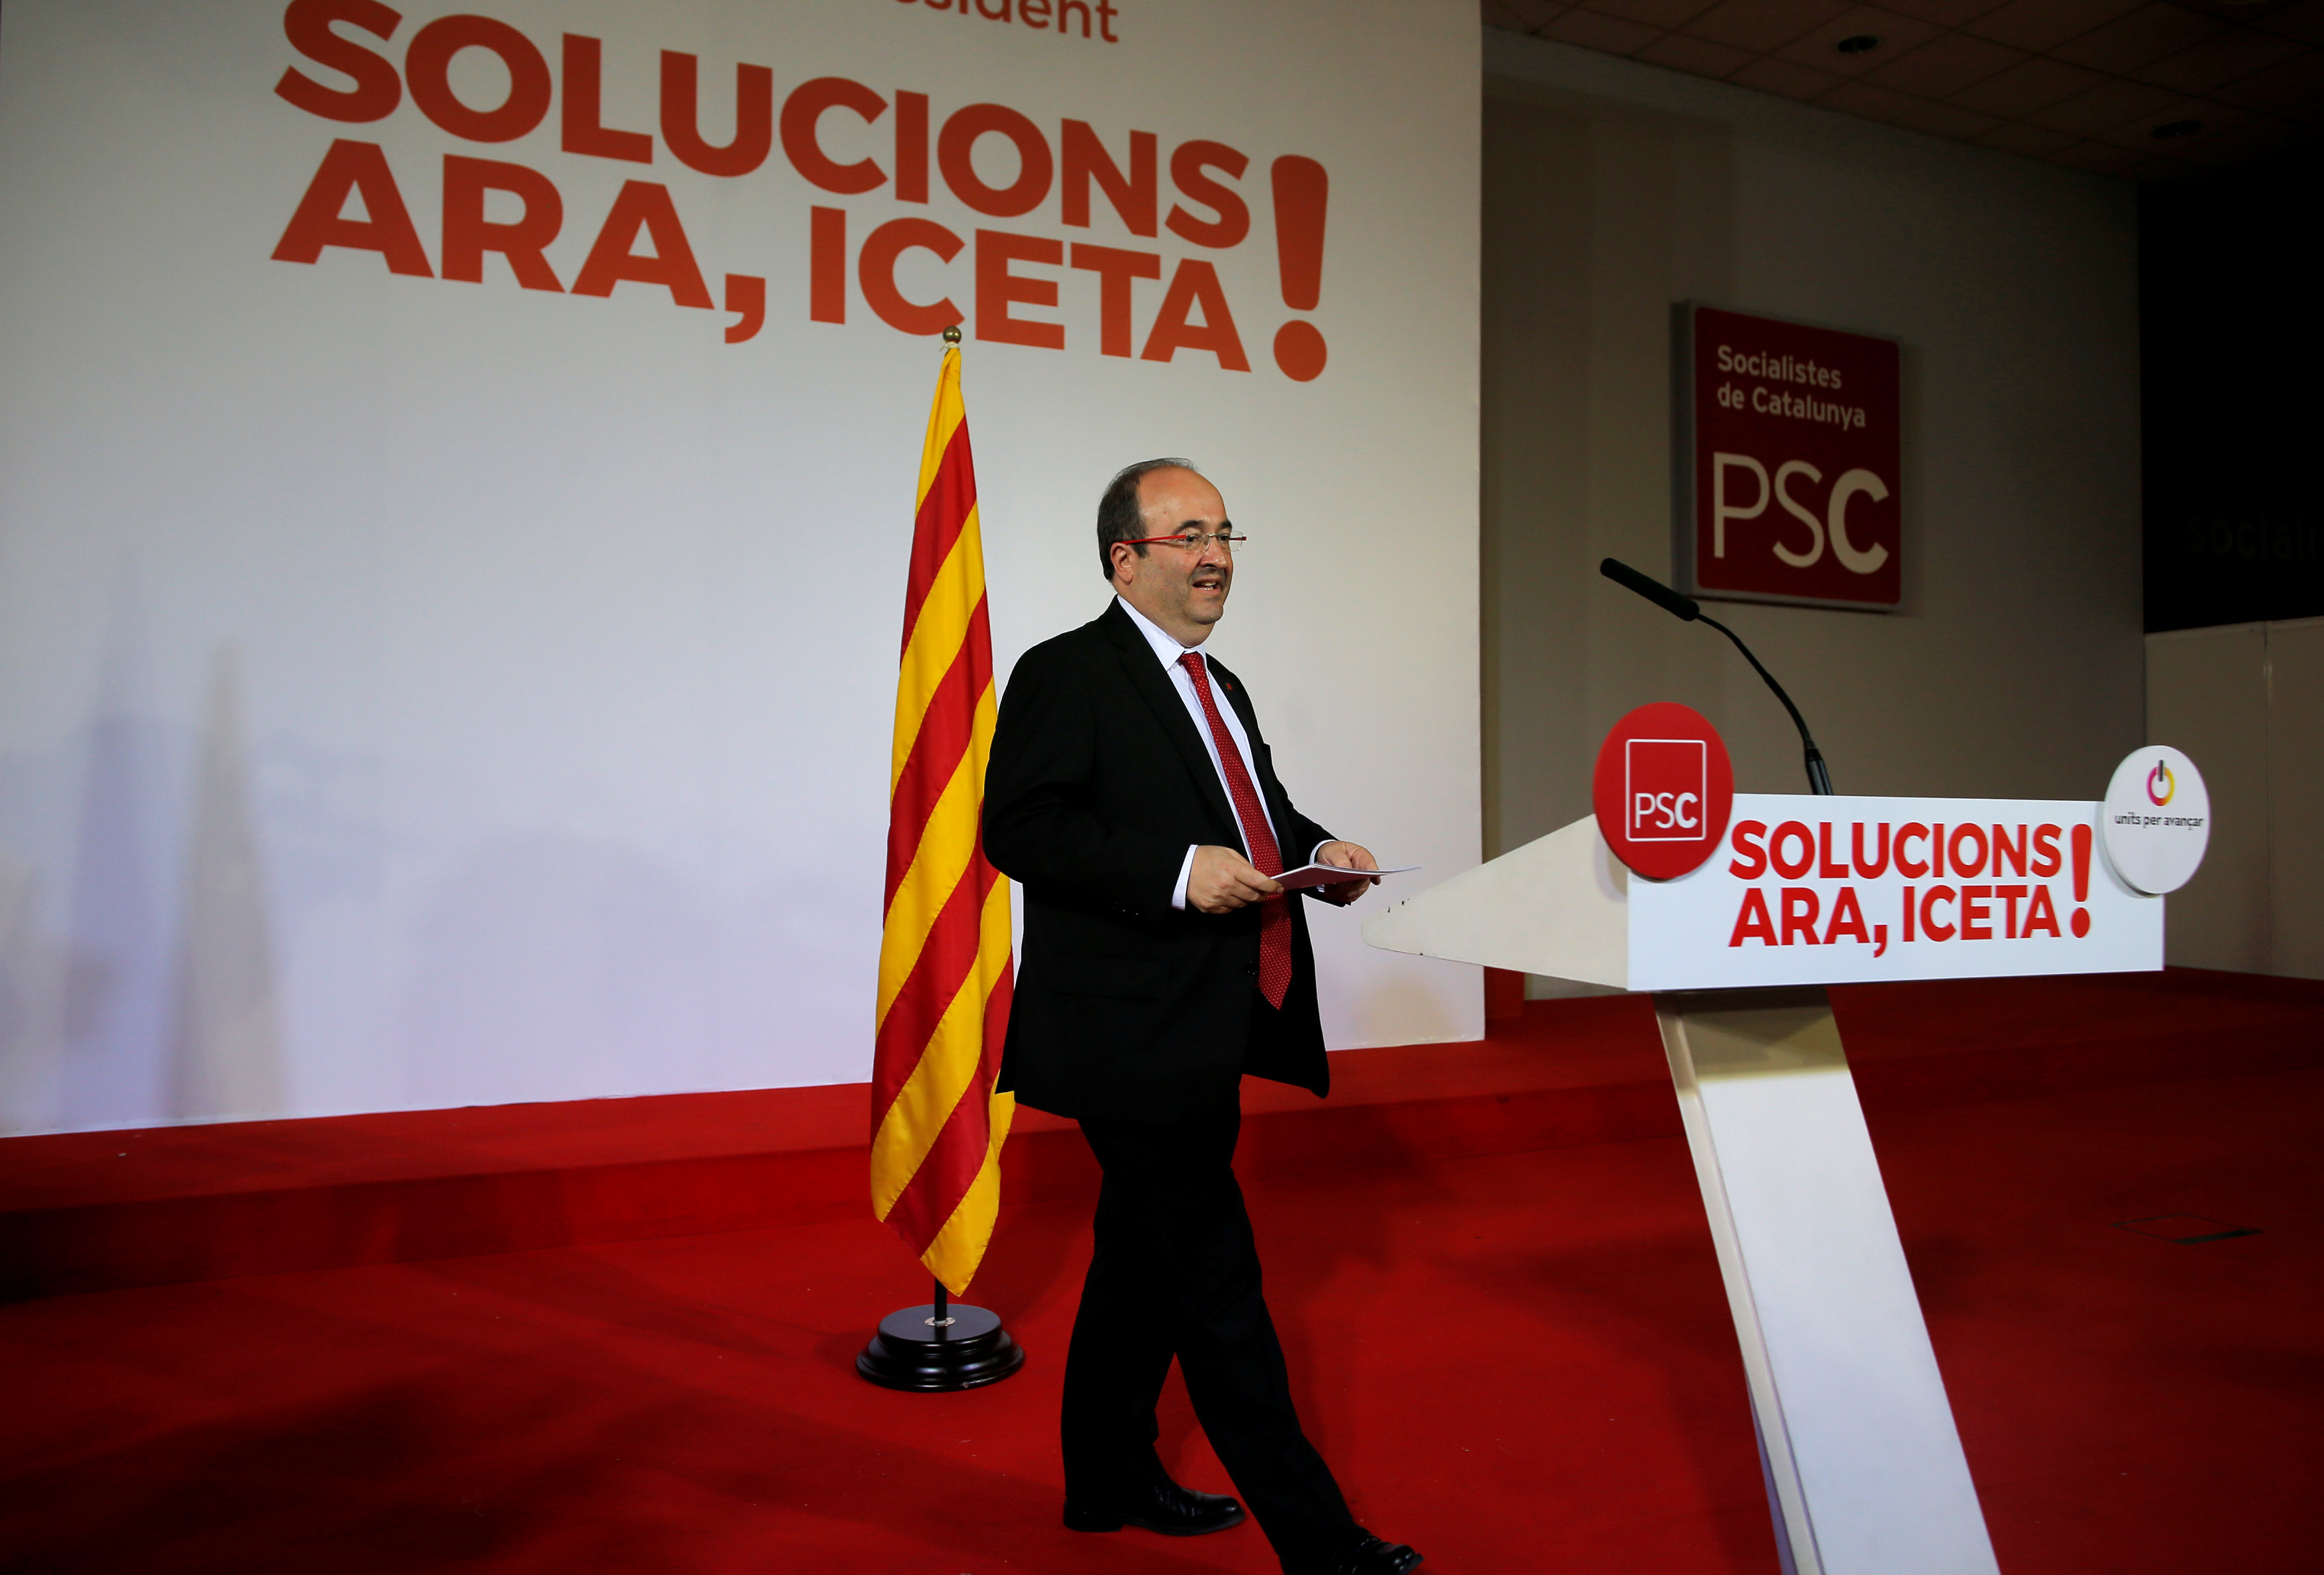 Miquel Iceta, leader of the Socialist Party of Catalonia speaks after the regional elections in Catalonia, in Barcelona, Spain, December 21, 2017. Credit: Reuters/Jon Nazca